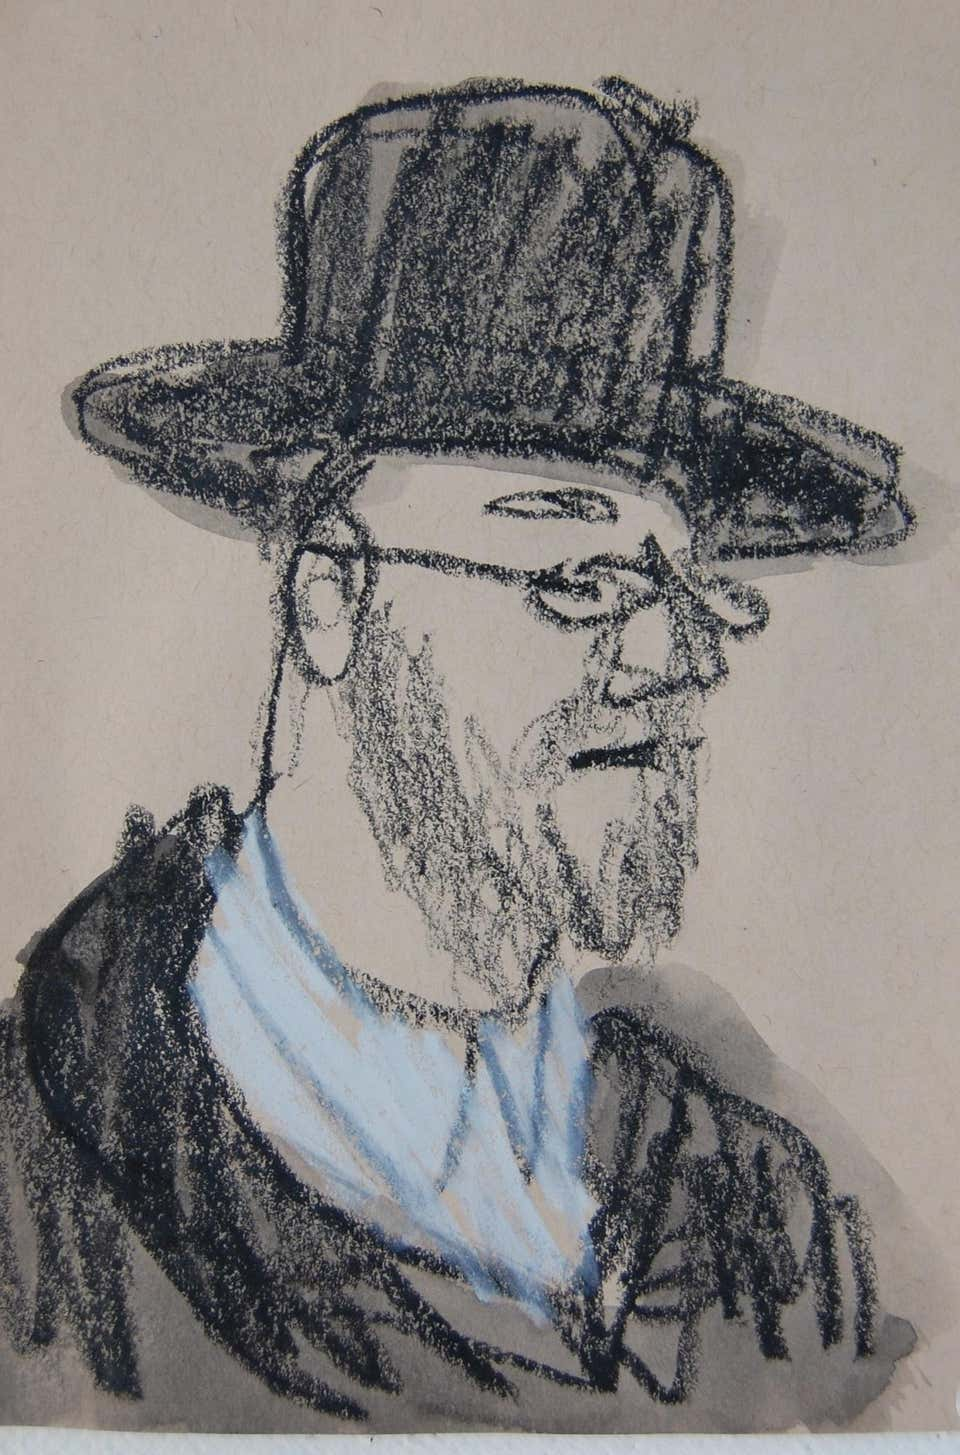 Man with Brimmed Hat and Beard, 2017, by Patrick Jewell